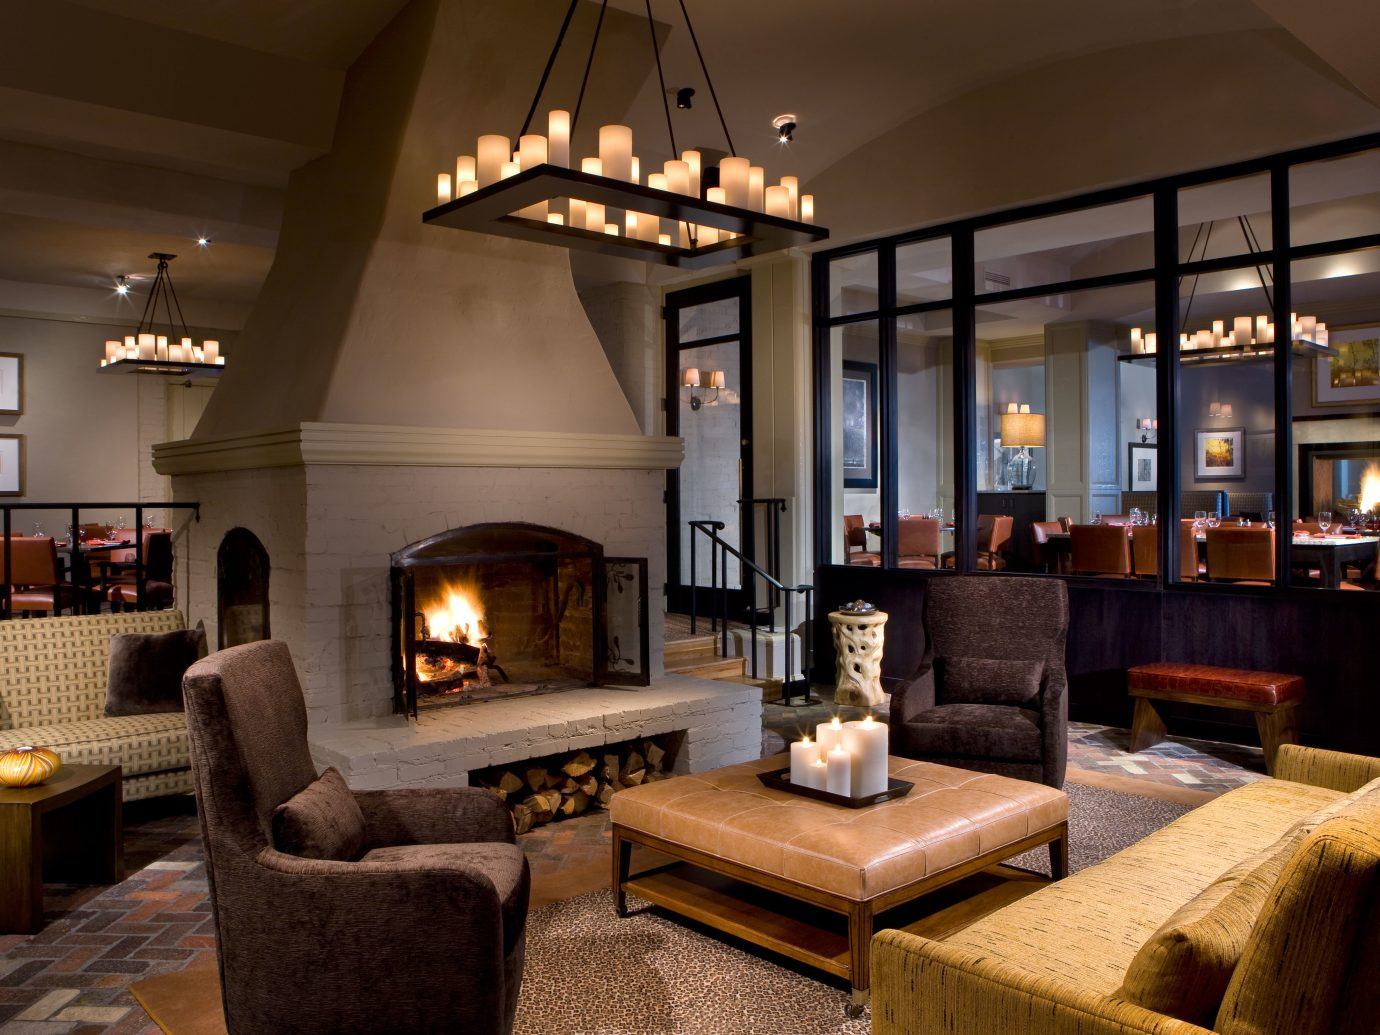 Design Fireplace Hotels Lounge Luxury Travel Mountains + Skiing Resort indoor Living floor room ceiling living room property fire estate home house interior design wood real estate cottage Villa mansion furniture area